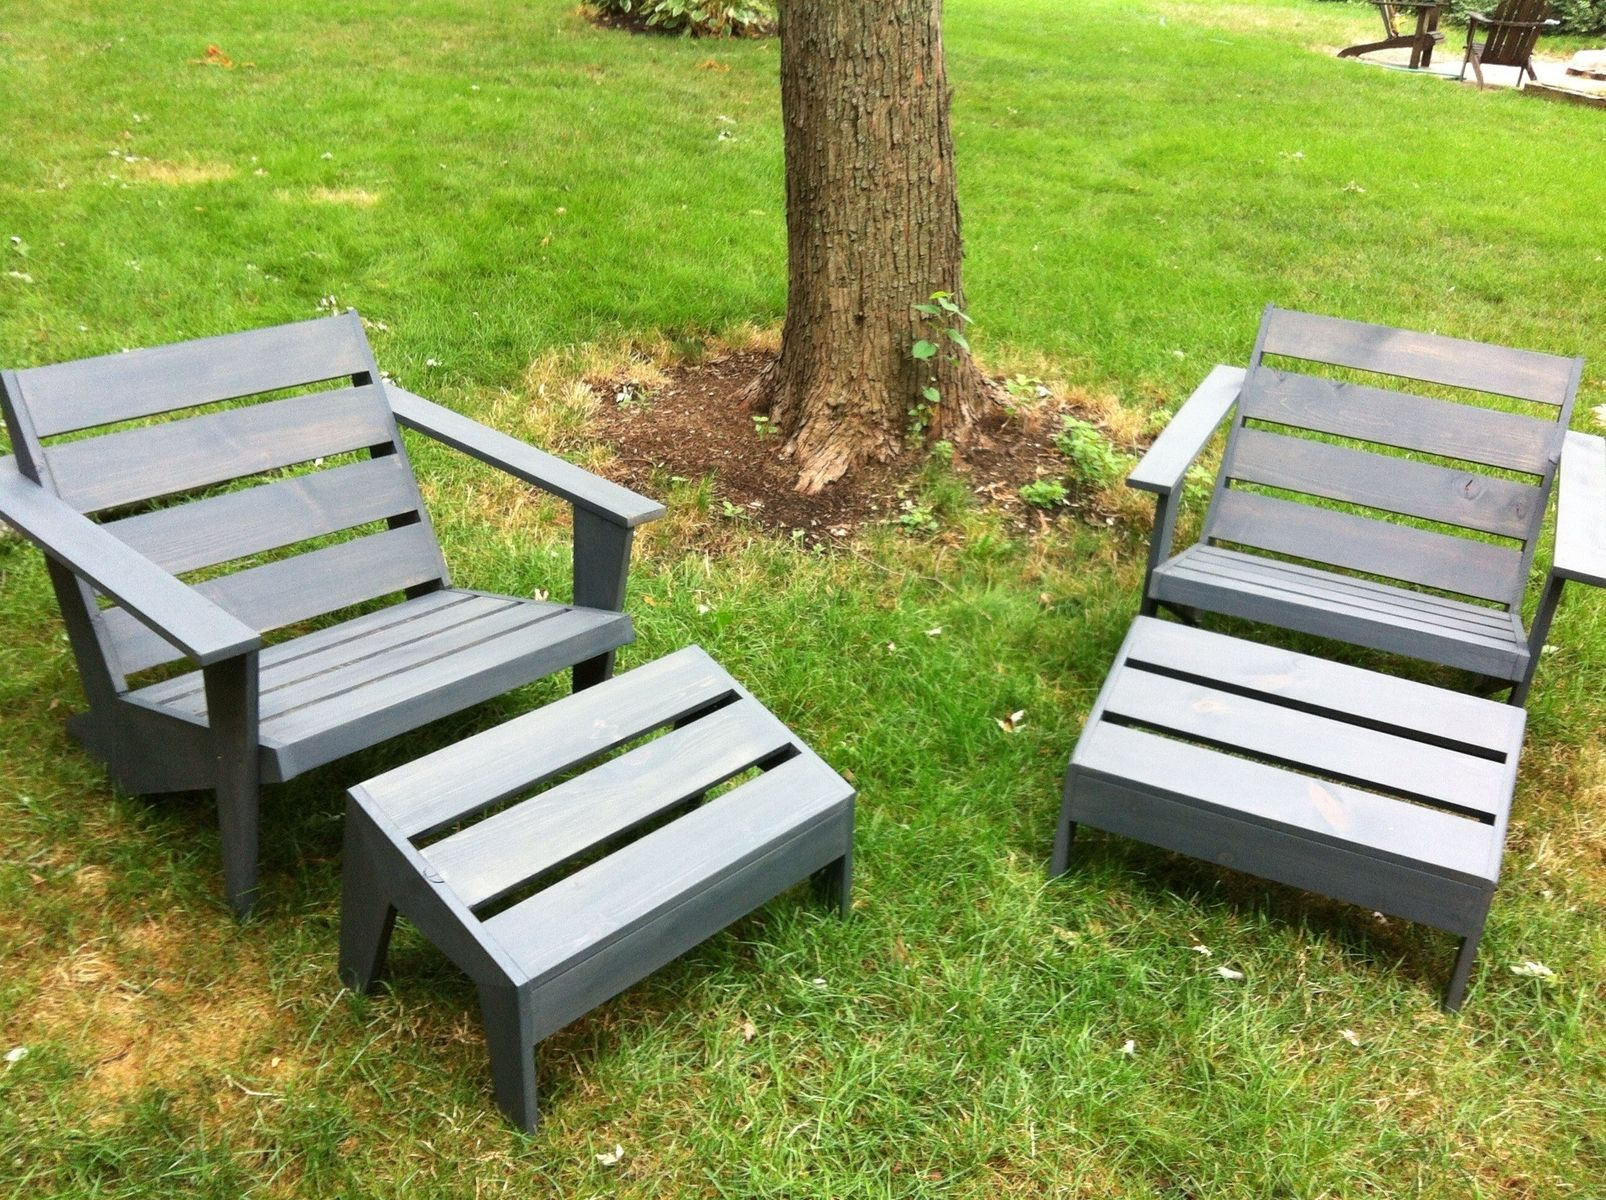 Buy a Hand Crafted Sawyer Style Adirondack Chair, made to order from ...